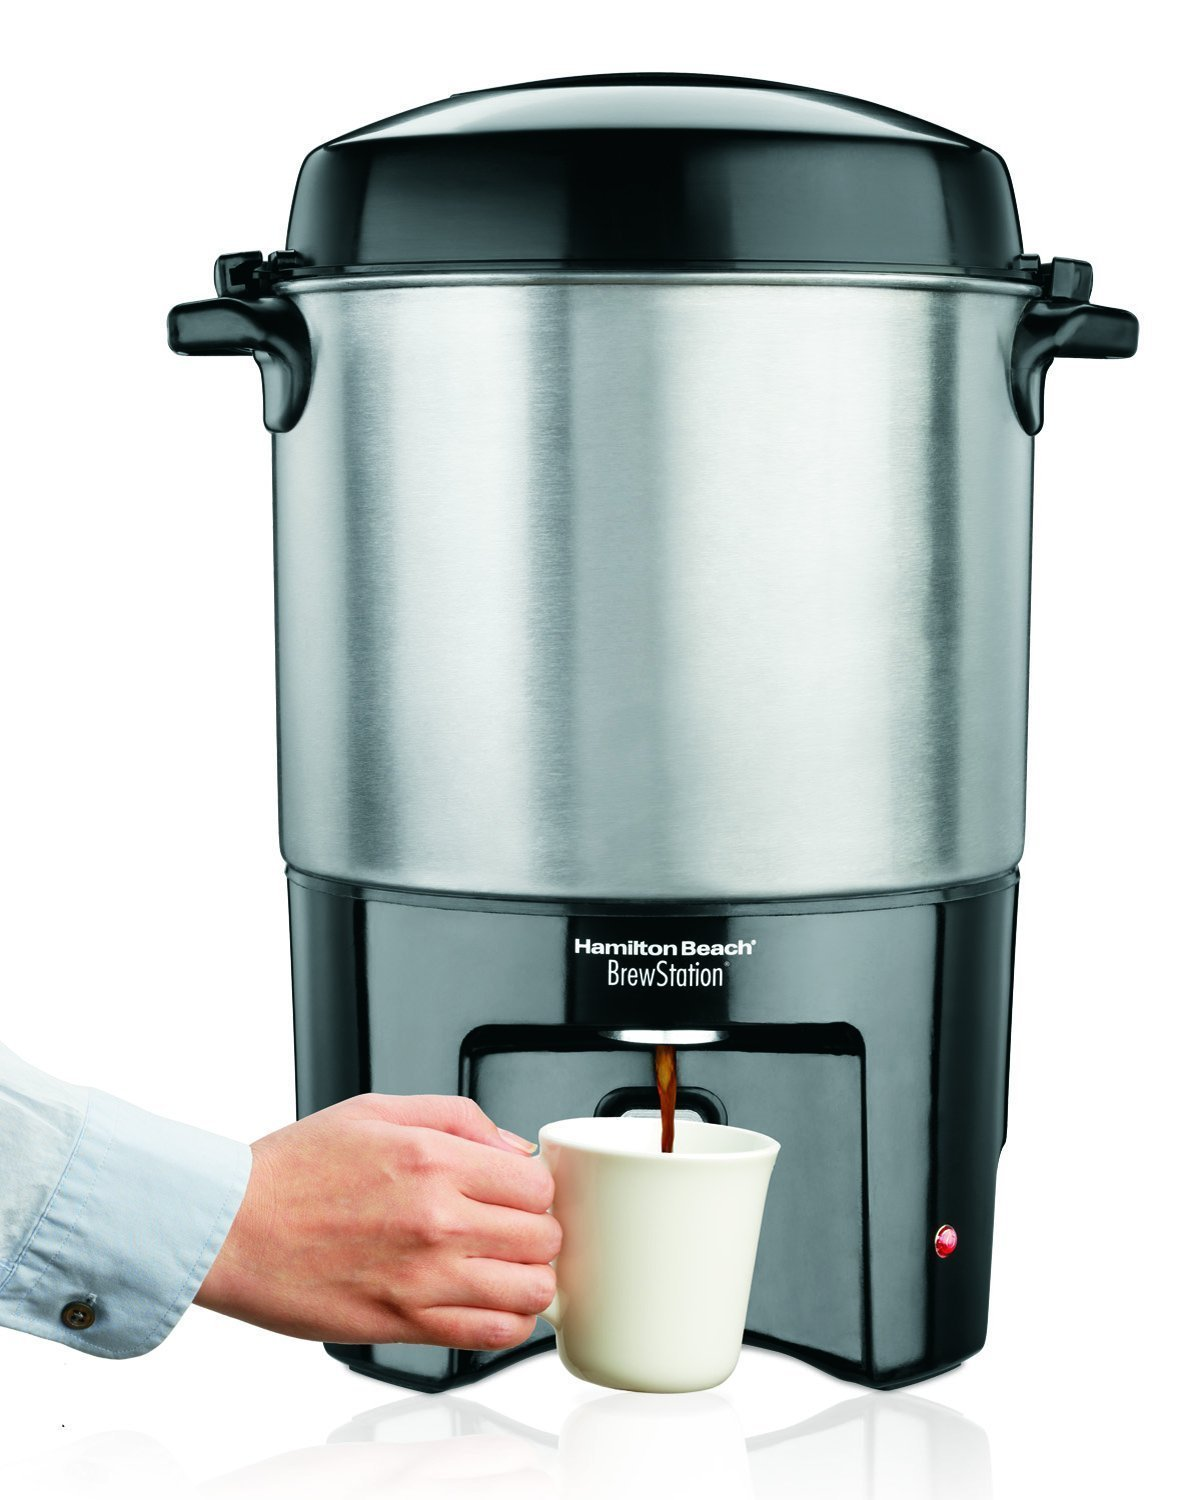 Dual Coffee Maker Hot Water Dispenser : New Commercial Coffee Maker 40 Cup Urn Dispenser Machine Water Heater Station eBay